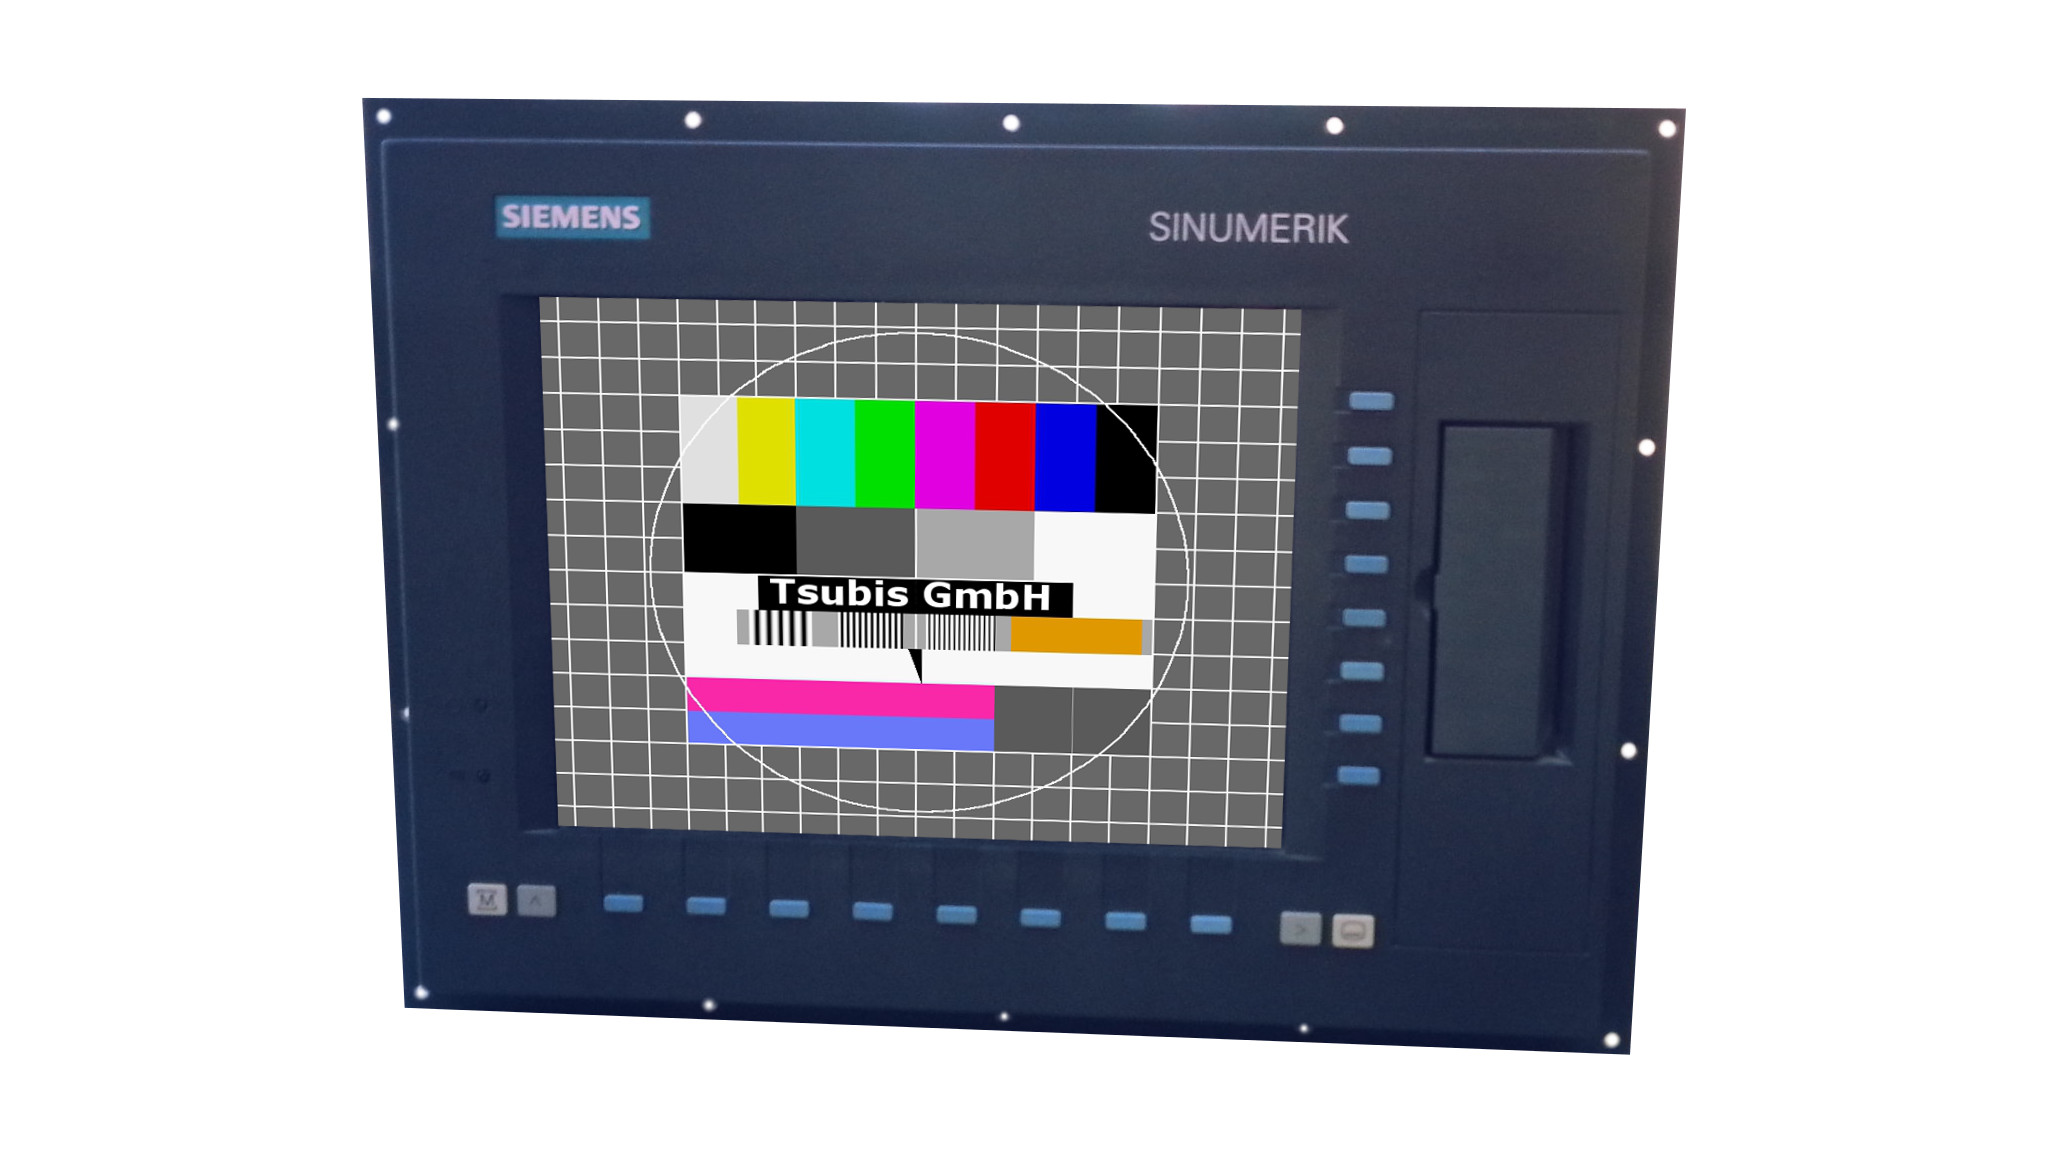 Replacement monitor for Siemens Sinumerik 840 D